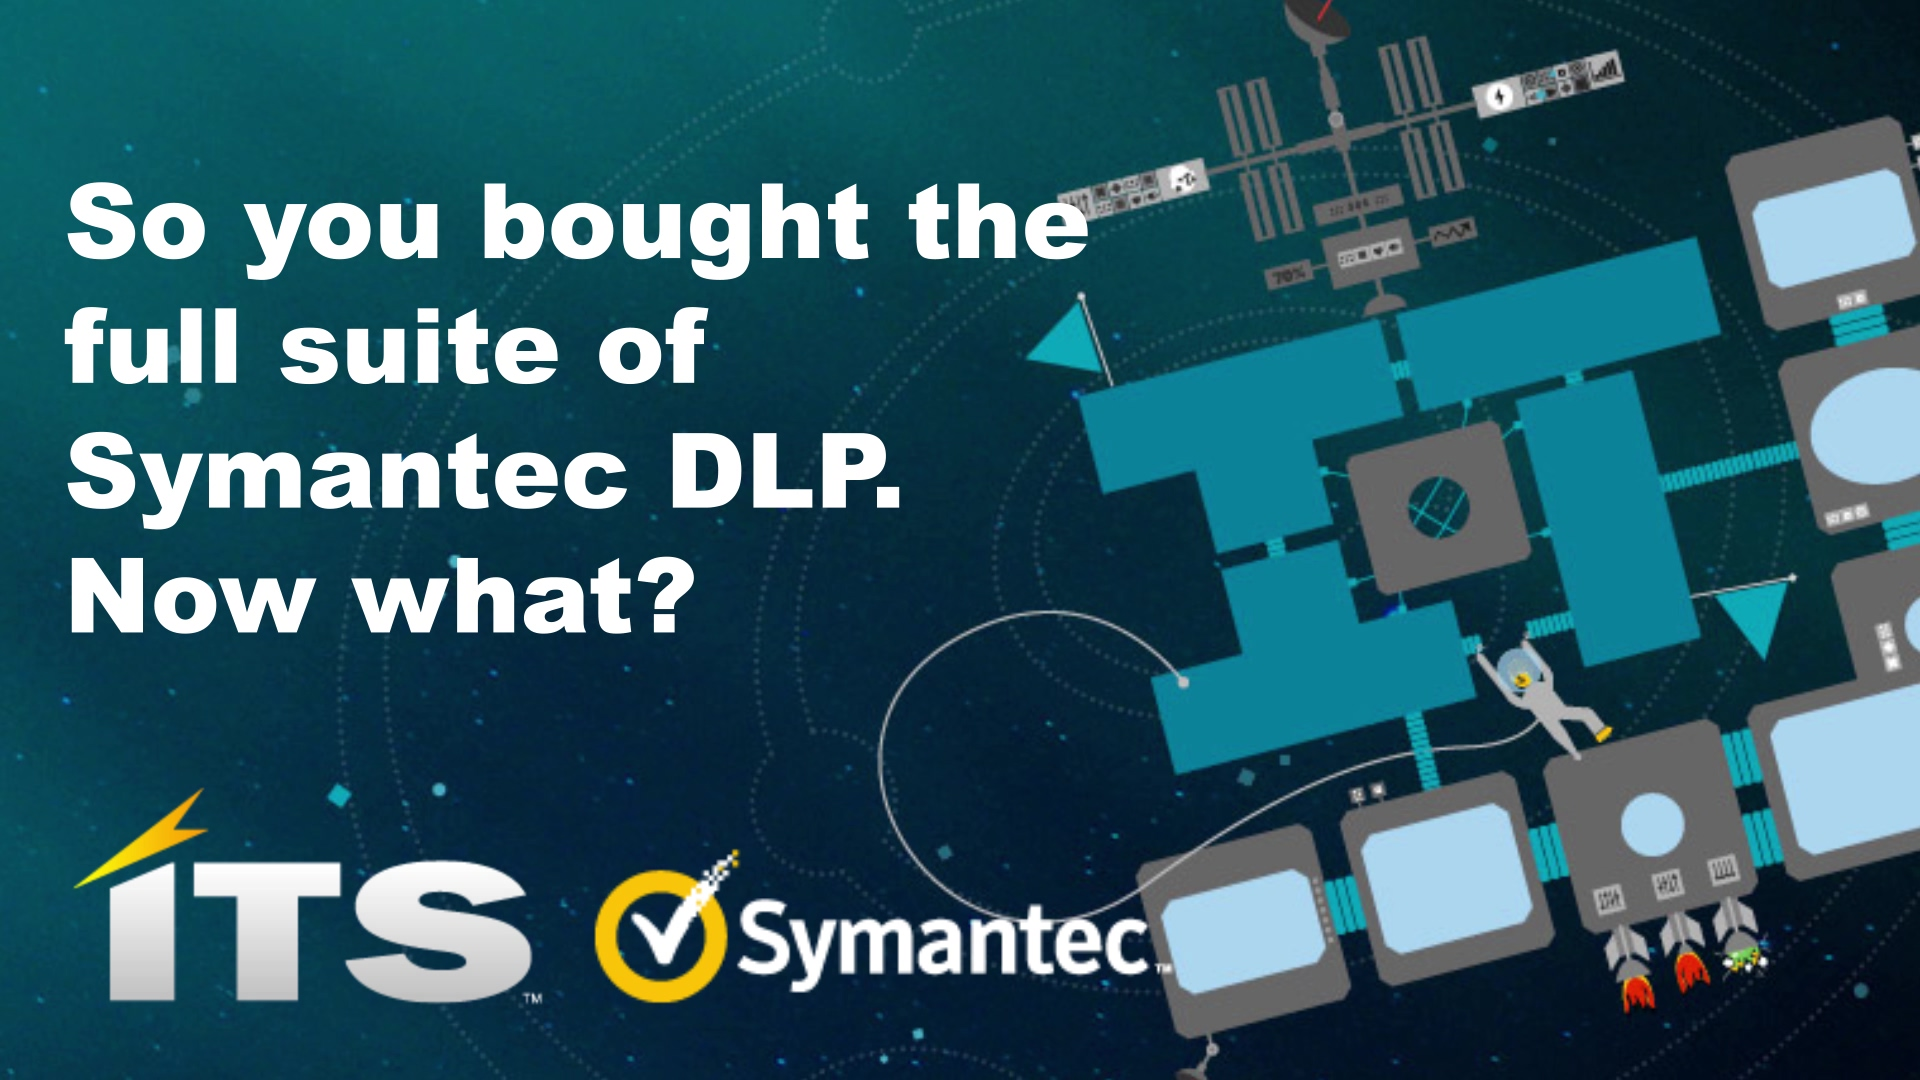 Video: So you bought the full suite of Symantec DLP, now what?